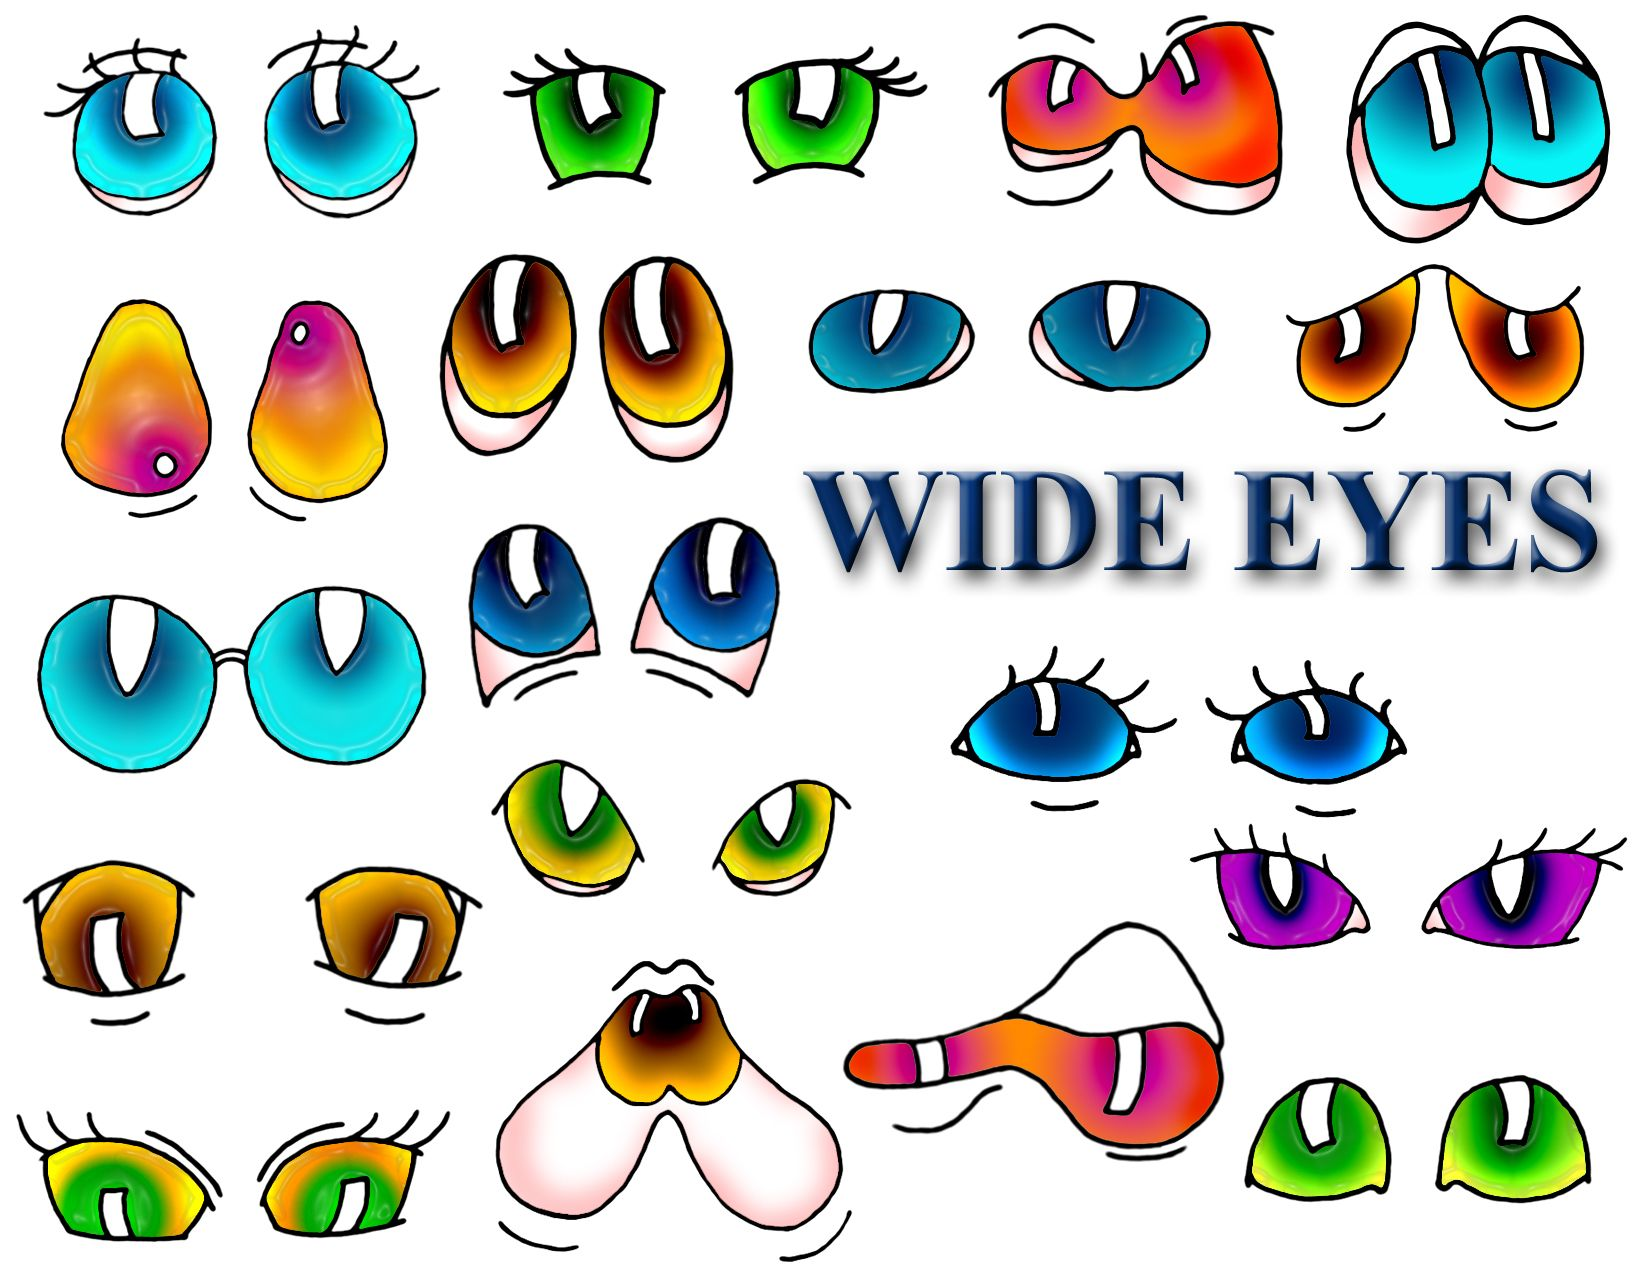 Cute cartoon animals with big eyes - Animal Eyes More Difficult 3a